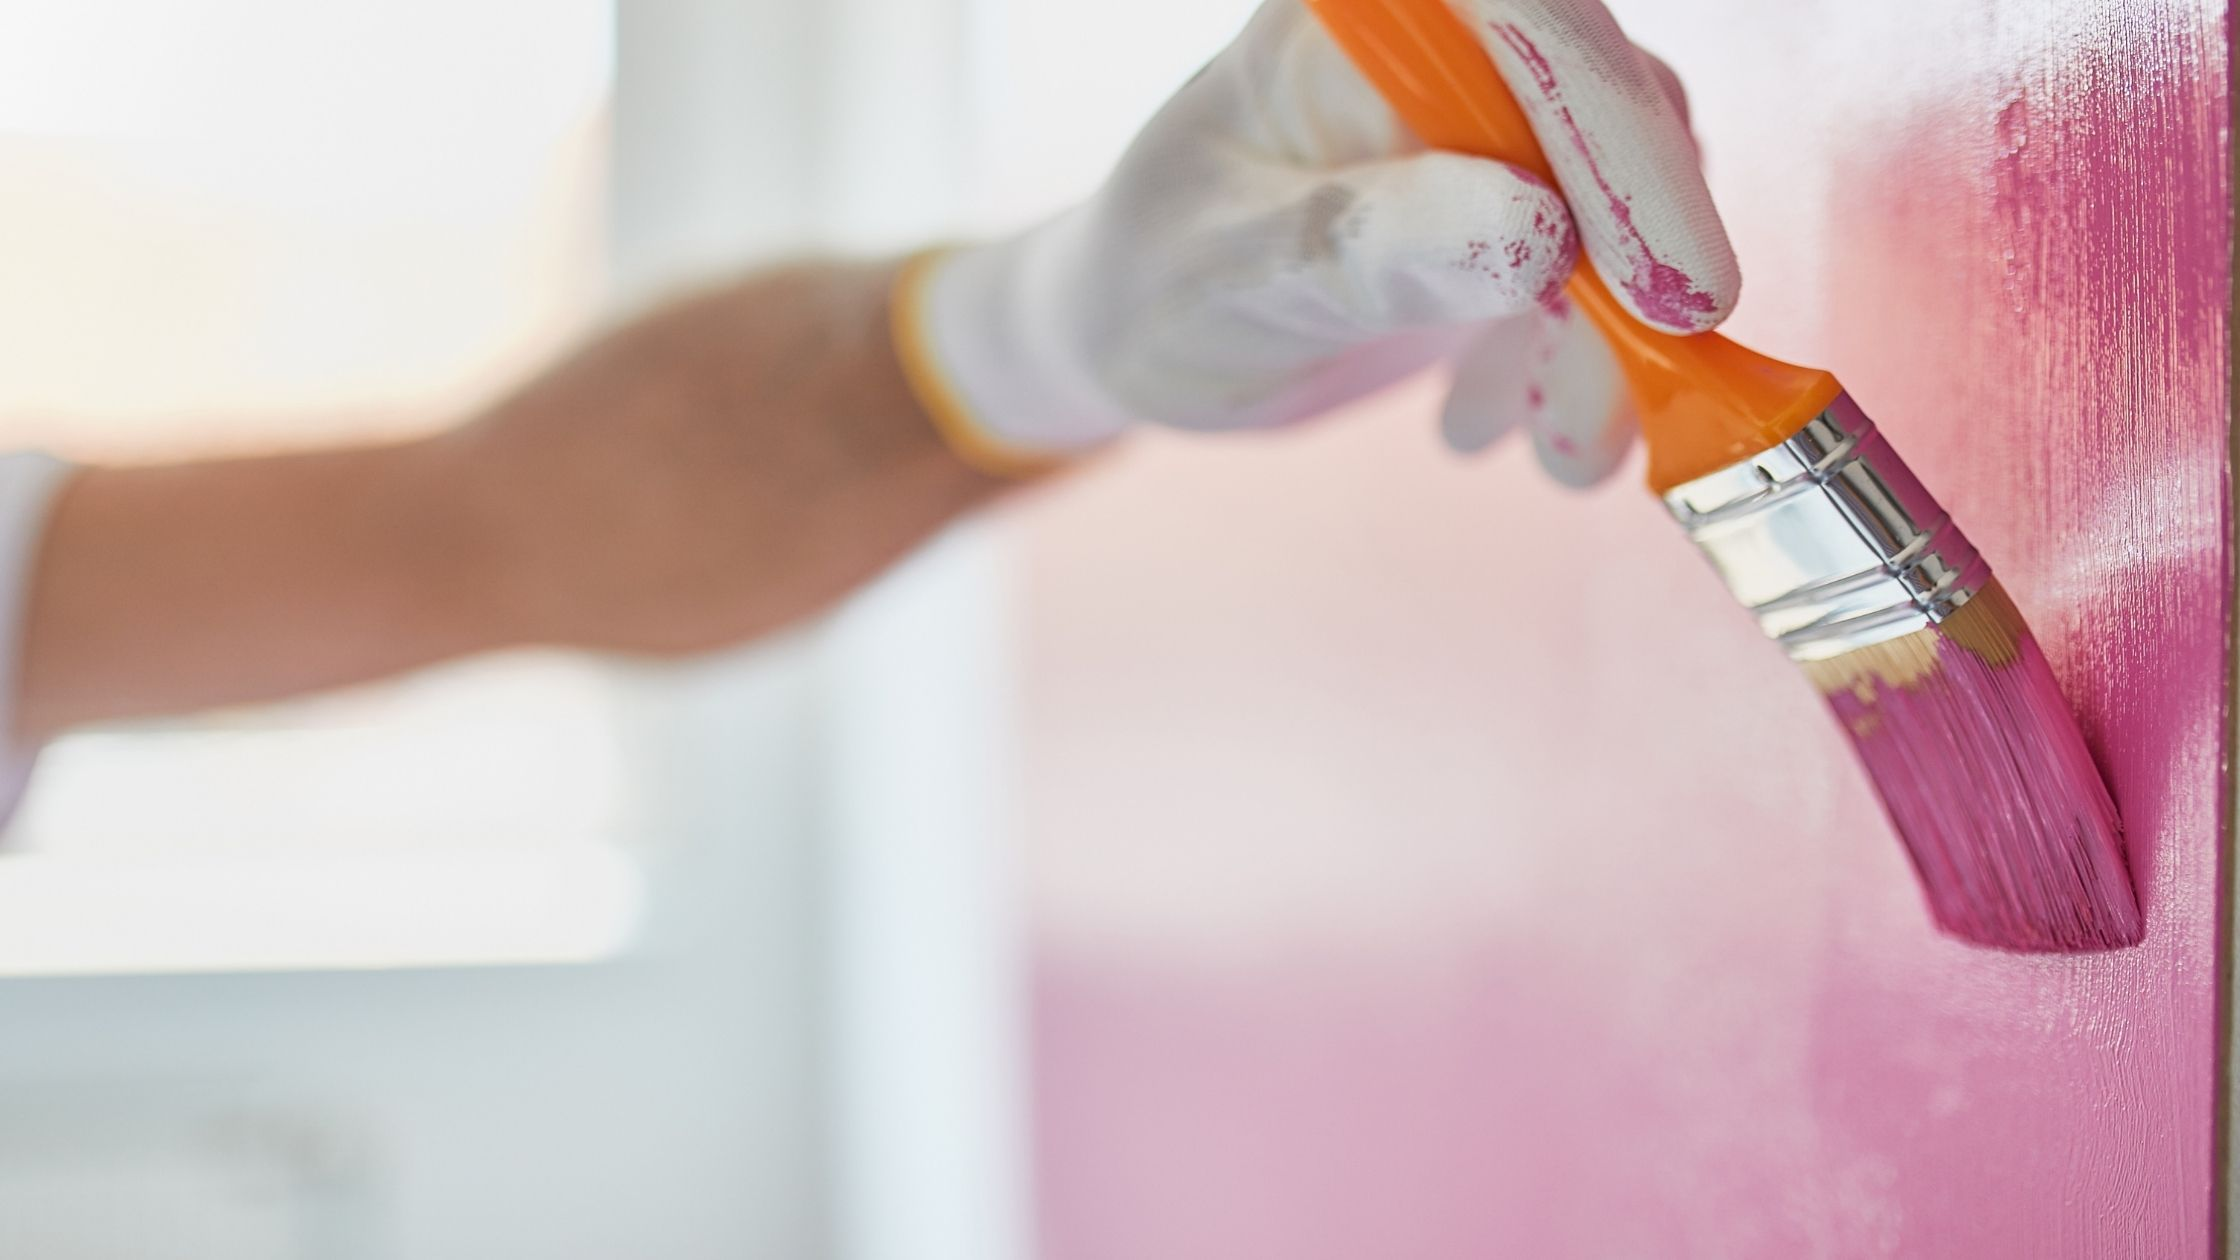 How do you get gloss paint out of carpet?